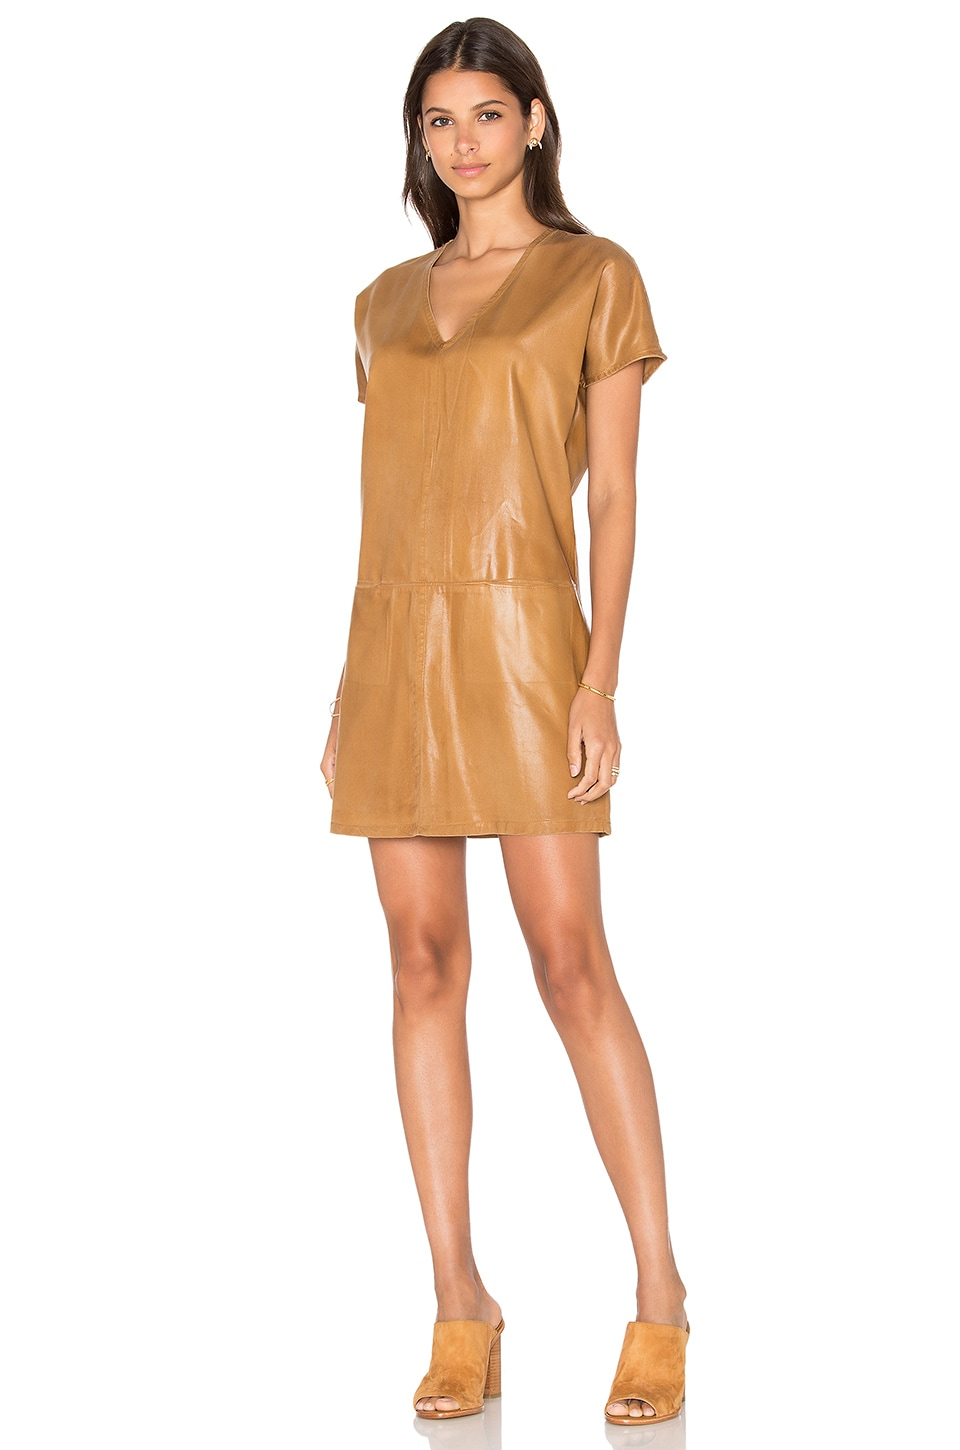 YORK street Pocket Shift Dress in Camel